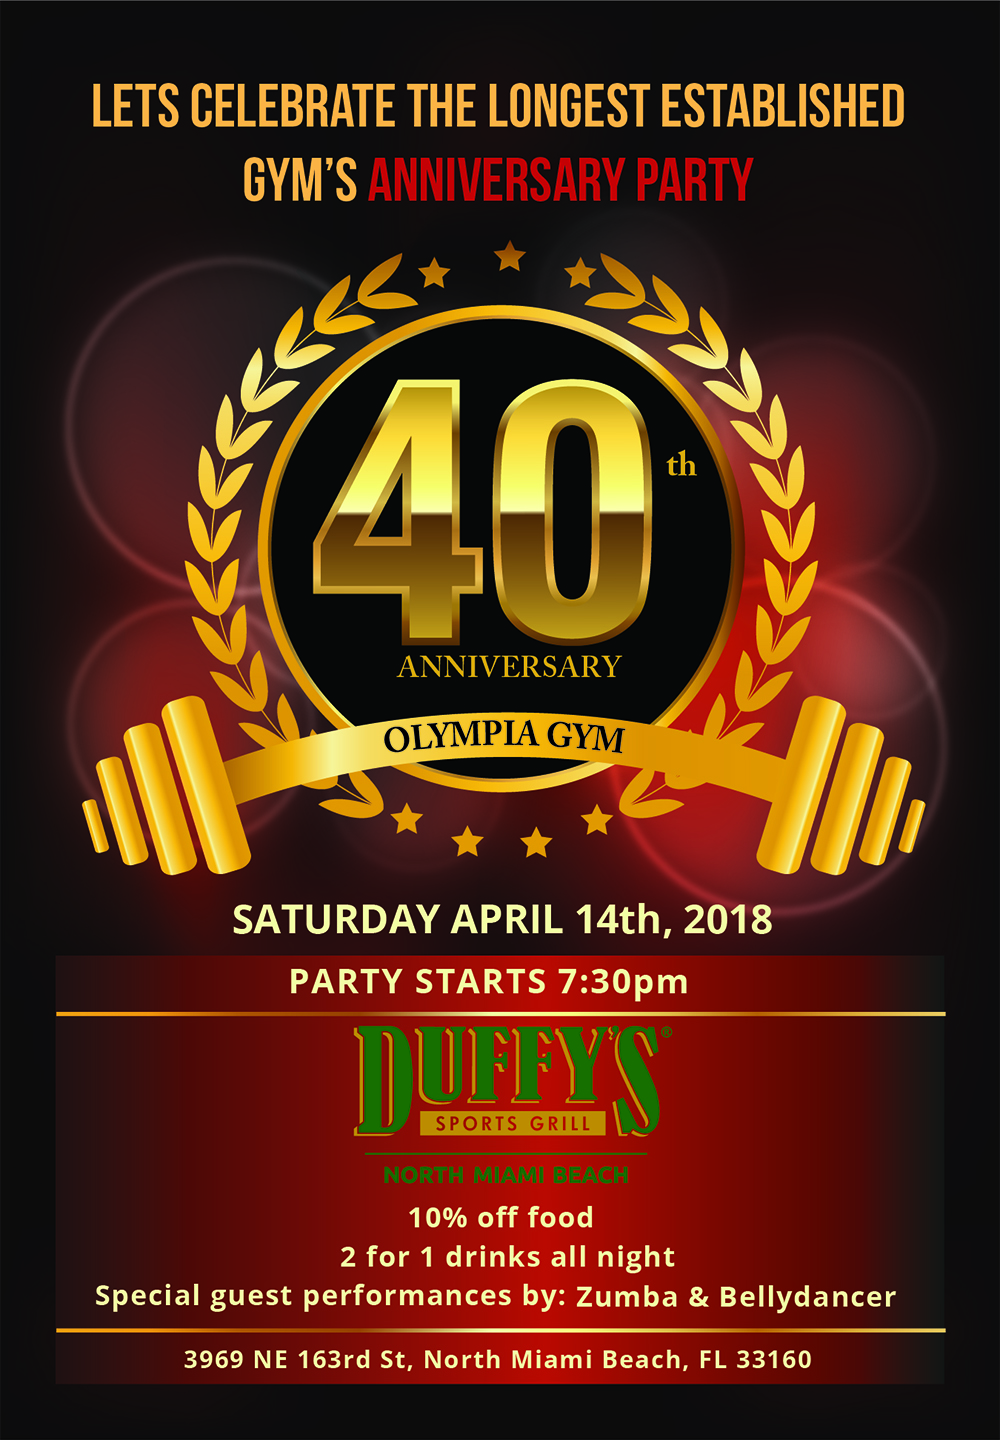 Olympia Gym 40th Anniversary Party Flyer